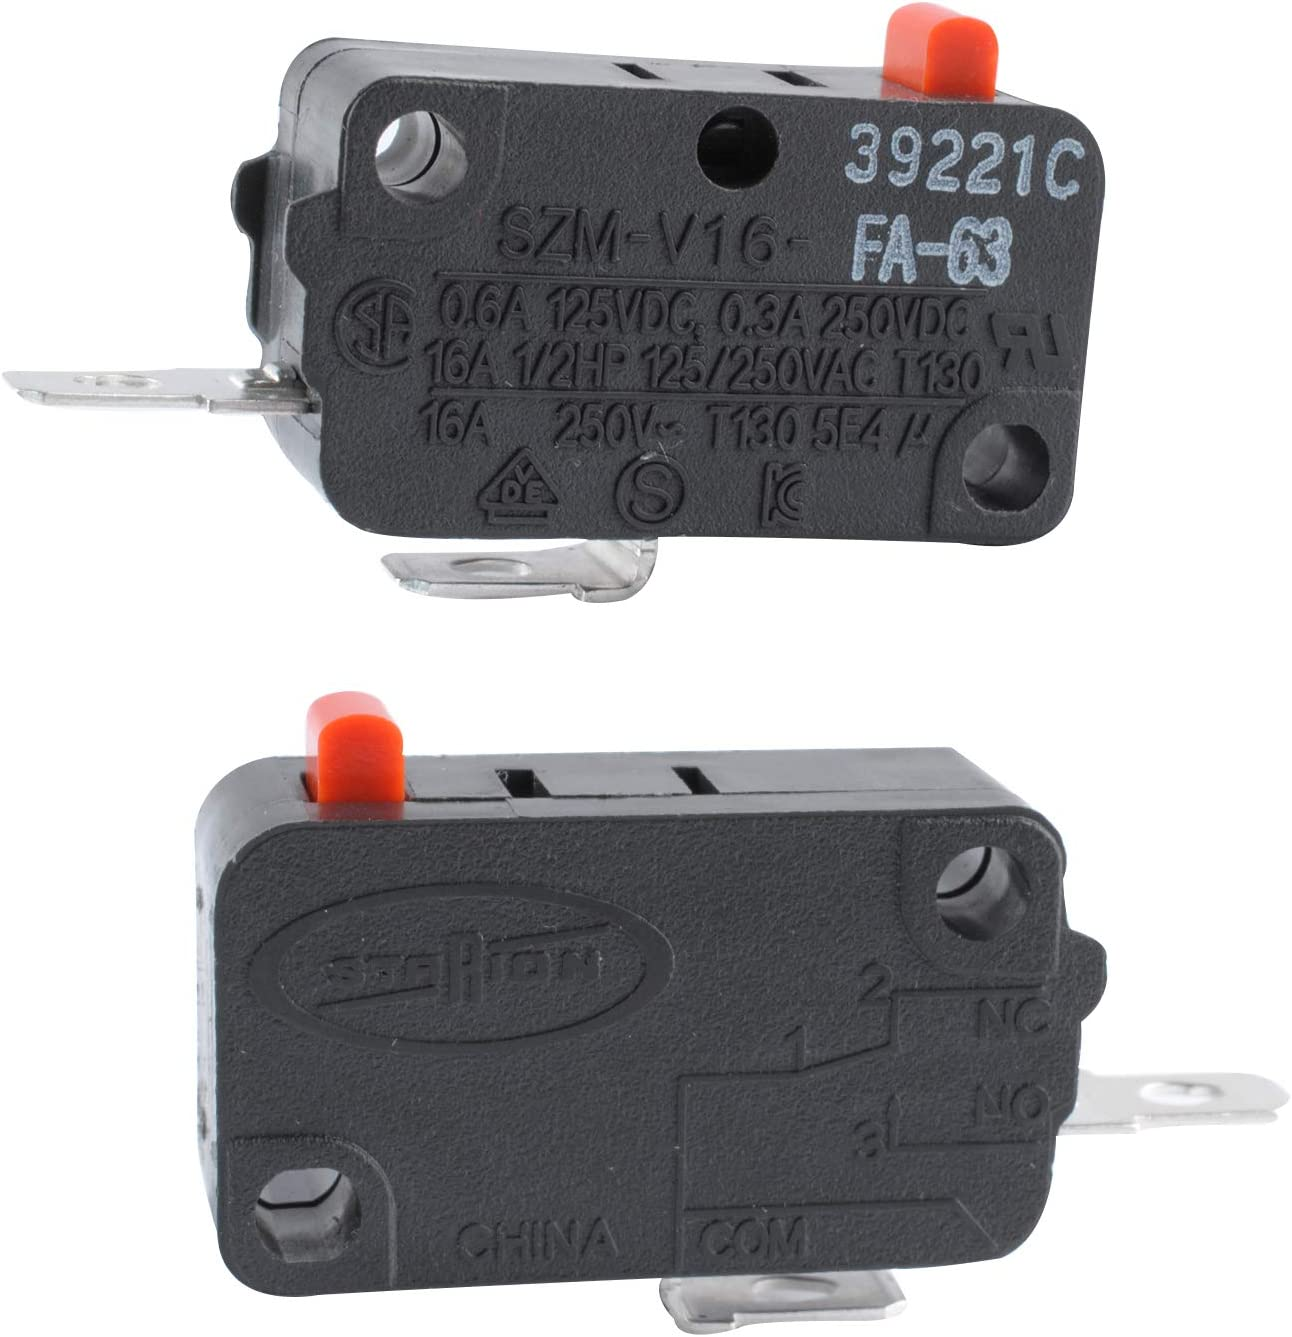 Swess ZM-V16-FD-63 Micro Switch Compatible with LG GE Starion SZM-V16-FA-63 FA-63 Microwave Door Switch